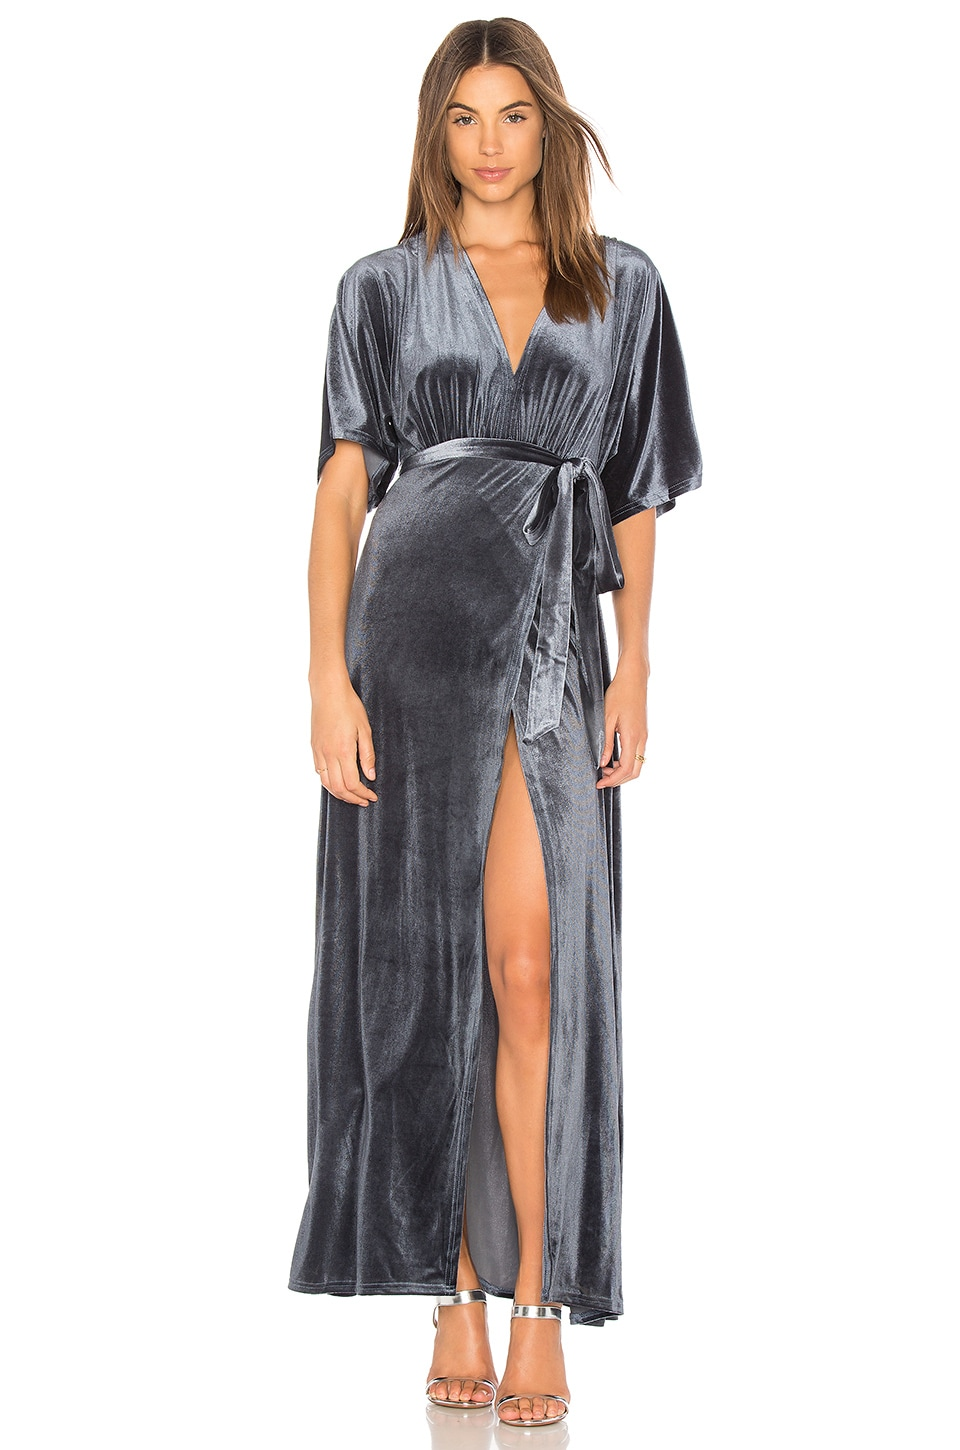 WYLDR Dreamer Velvet Wrap Dress in Dusty Blue